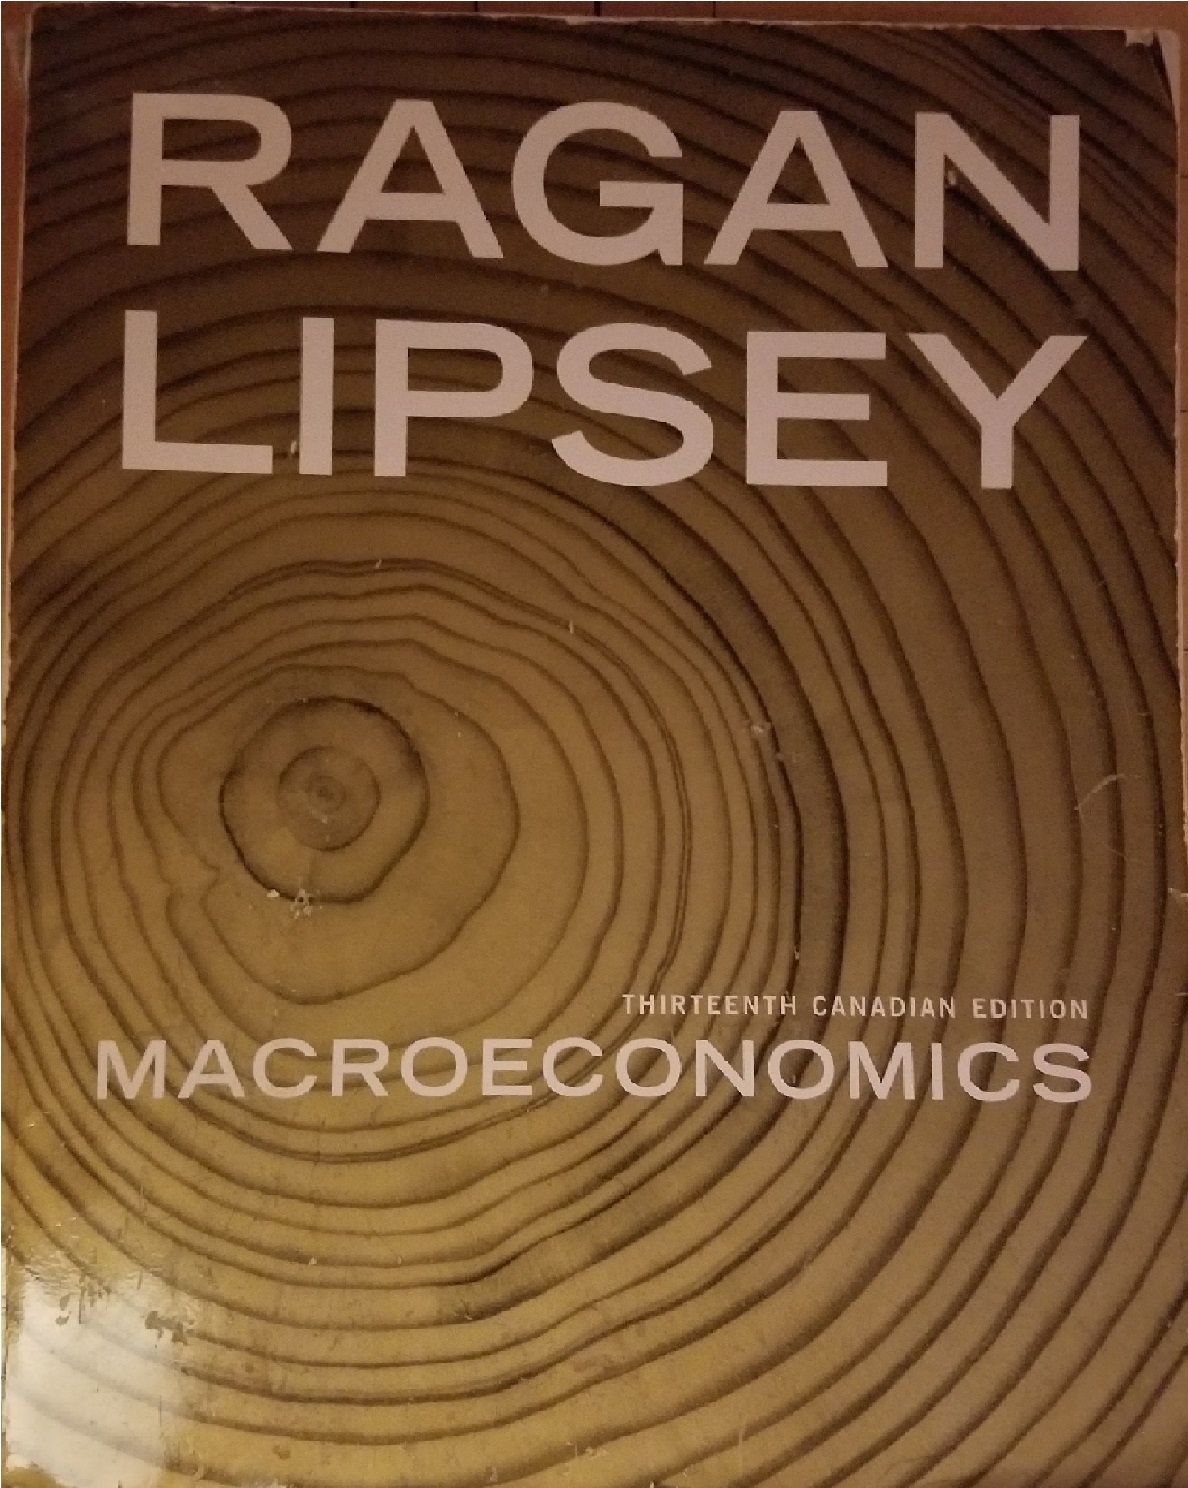 Ebook economics 13th canadian edition by ragan and lipsey.